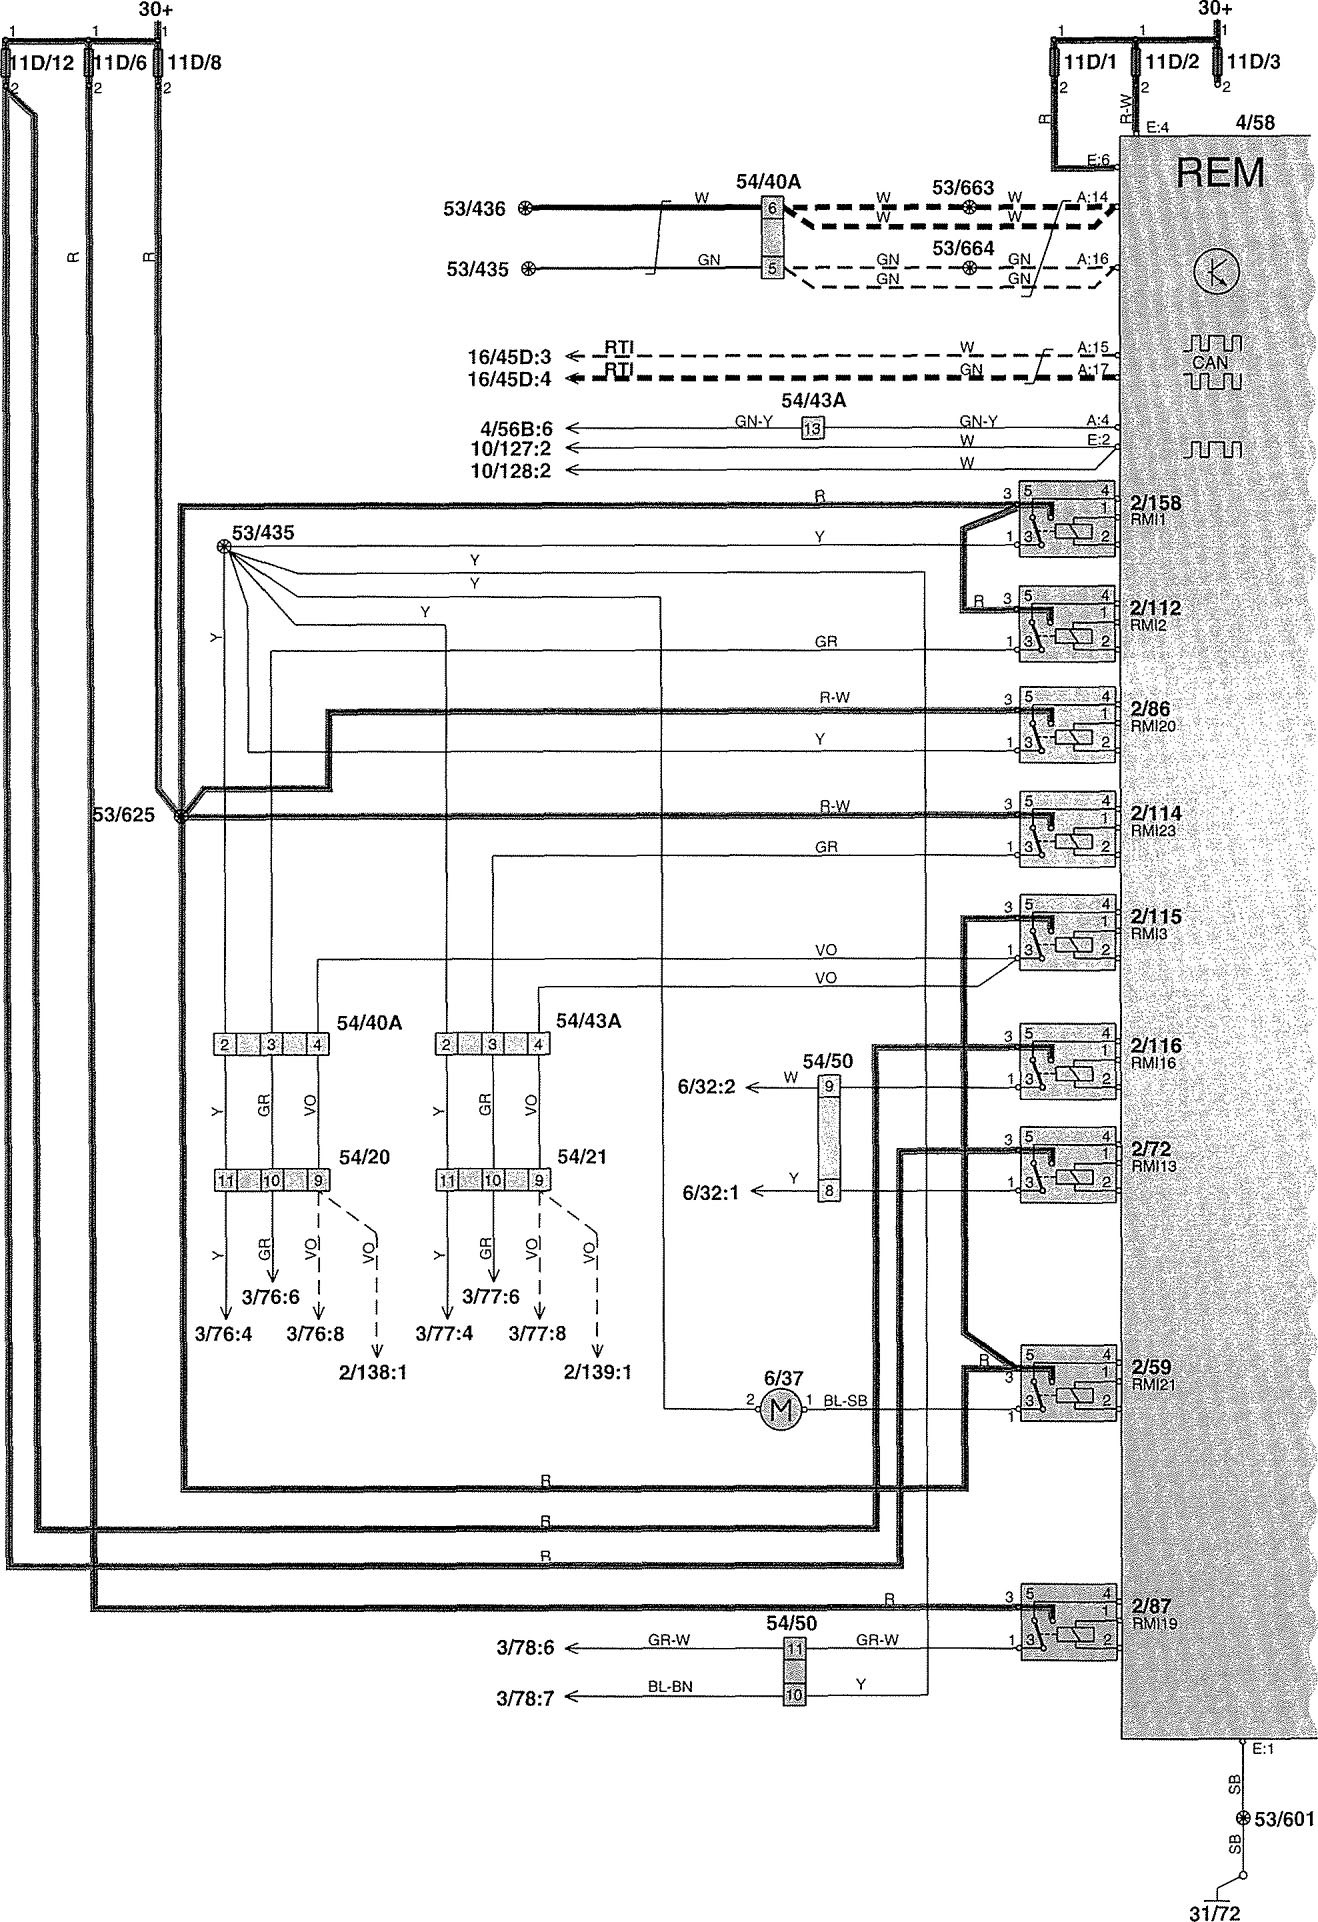 WRG-4274] Volvo V70 Xc Wiring Diagram on volvo v70 tailgate wiring harness, volvo amazon wiring diagram, volvo v70 cooling, volvo ignition wiring diagram, volvo v70 timing marks, volvo v70 battery, volvo v70 rear suspension, volvo v70 thermostat, volvo v70 repair, volvo s70 wiring-diagram, volvo v70 schematics, volvo v70 oil pump, volvo 240 wiring diagram, volvo v70 power, volvo v70 fuse box diagram, volvo v70 distributor, volvo t5 engine diagram, volvo v70 firing order, volvo v70 vacuum diagram, volvo v70 starter,